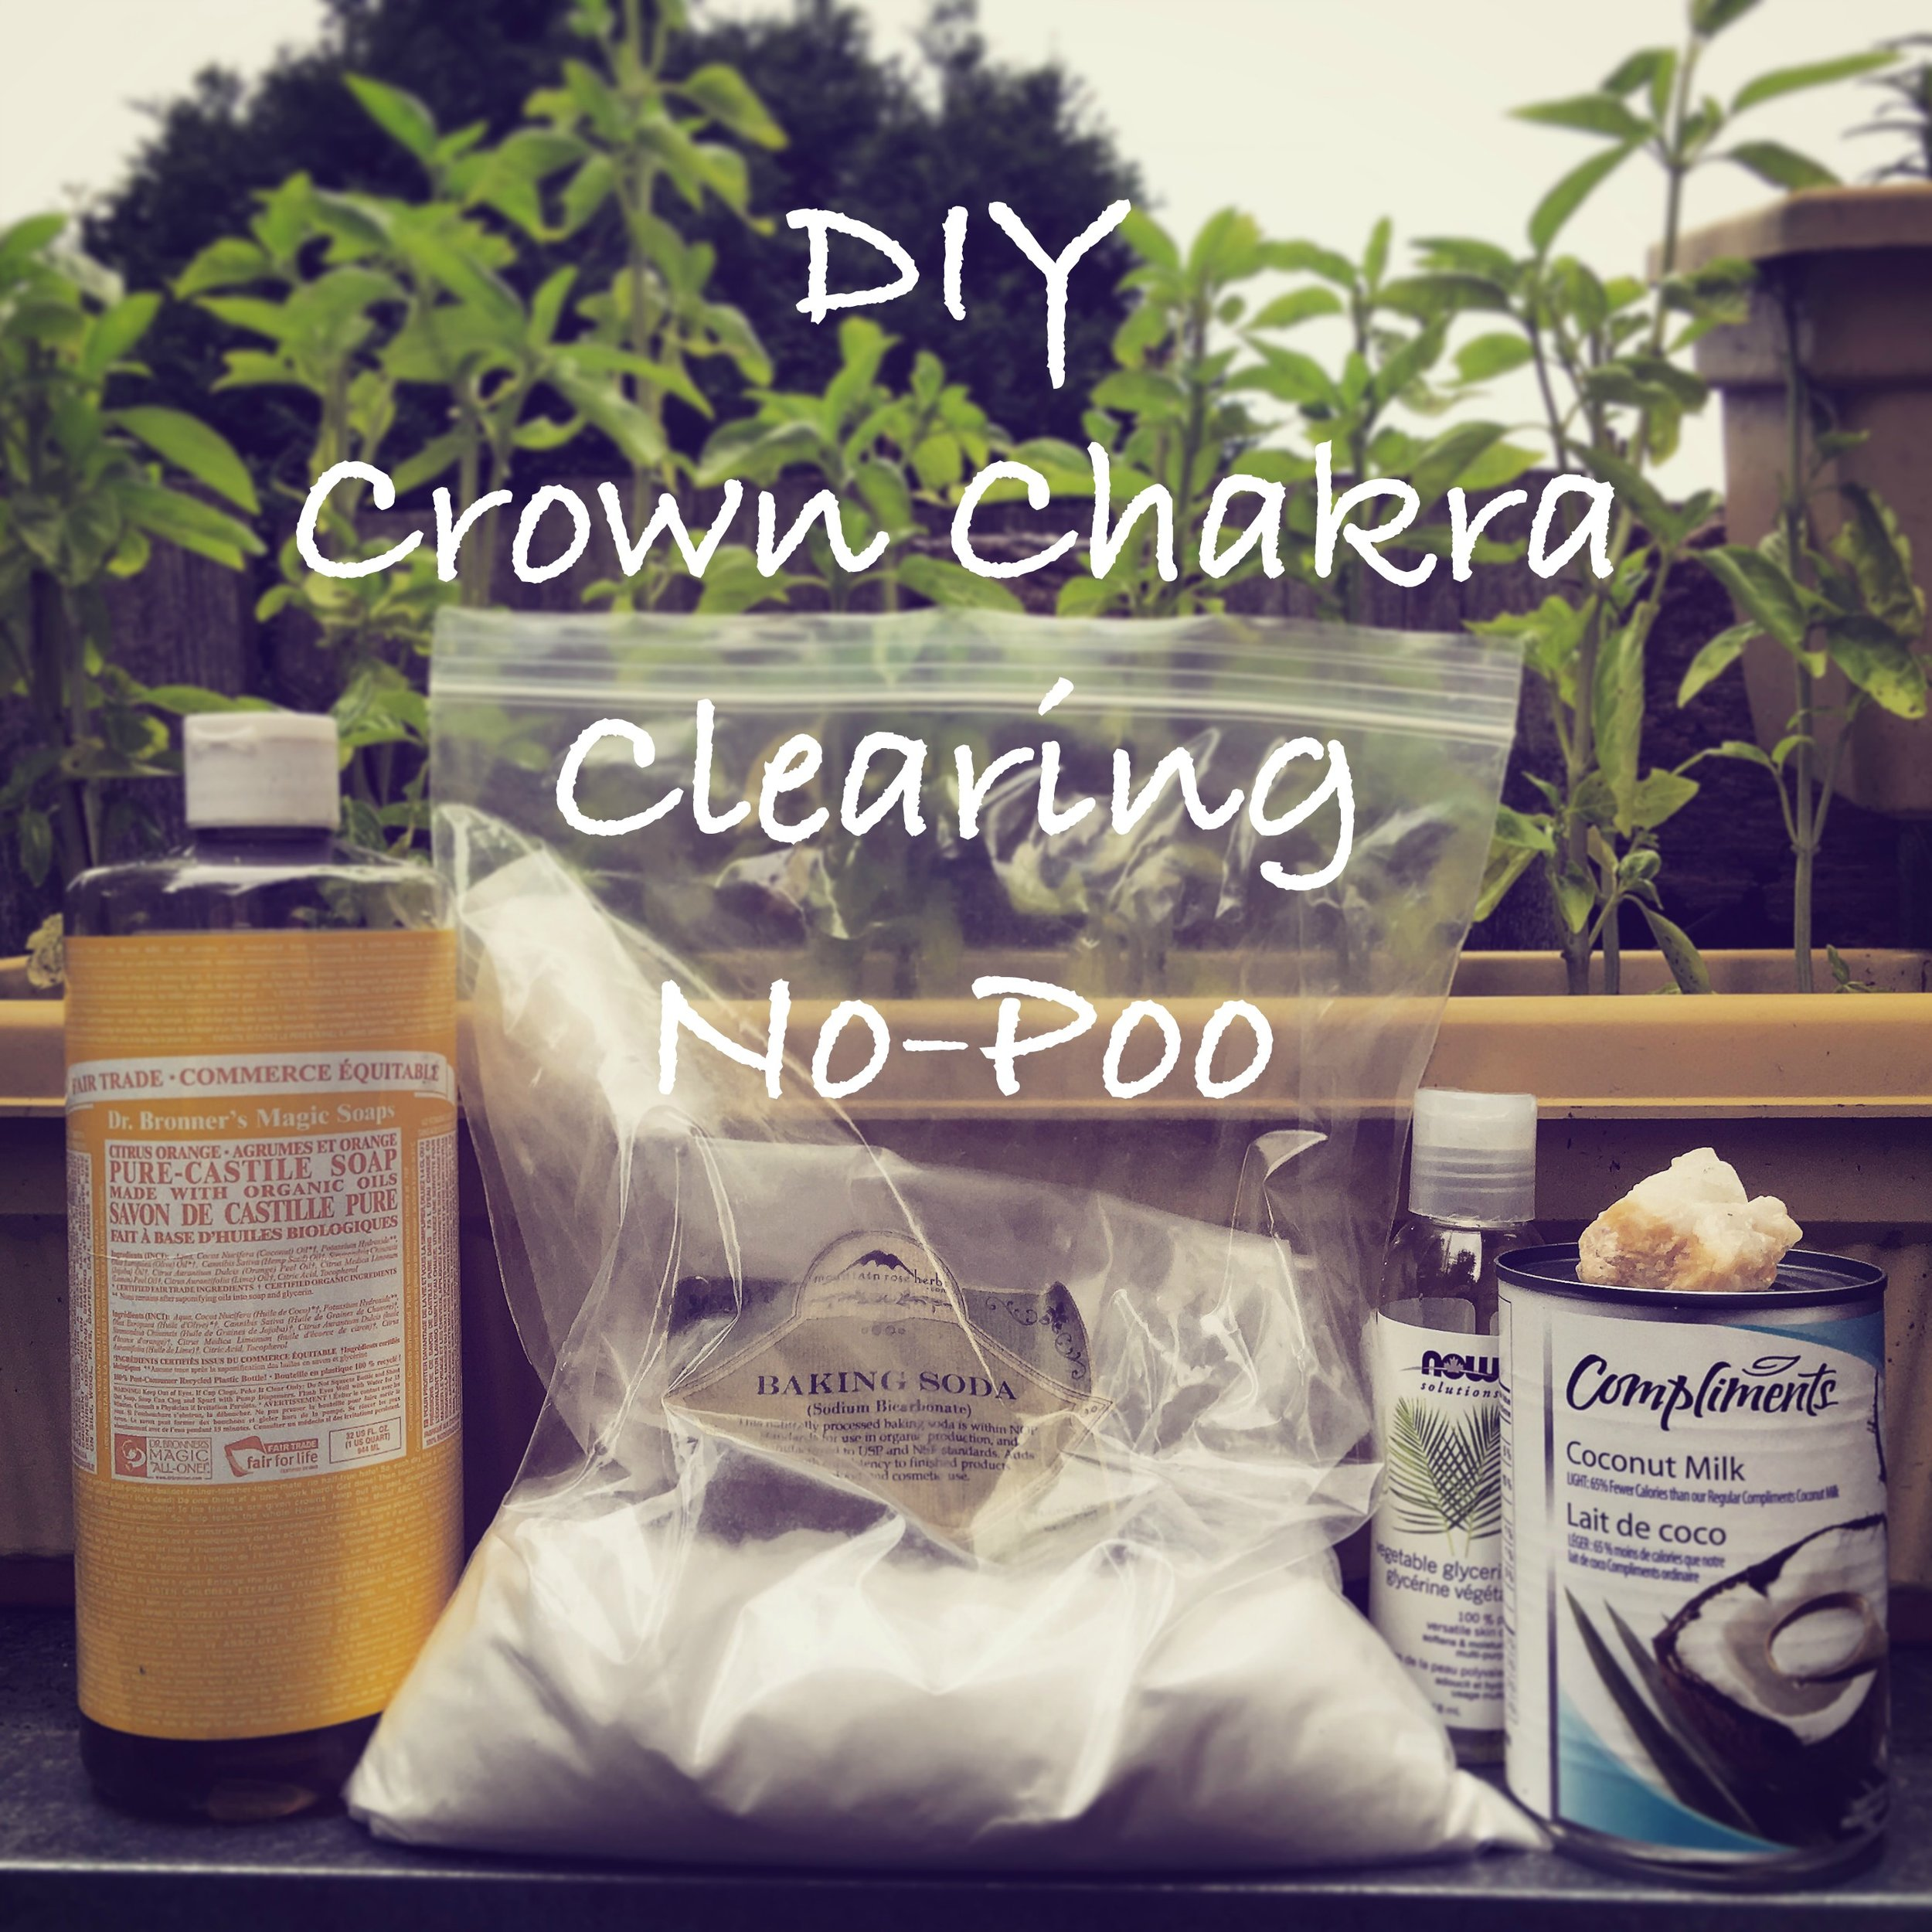 DIY crown chakra clearing no poo ingredients / krista-mitchell.com